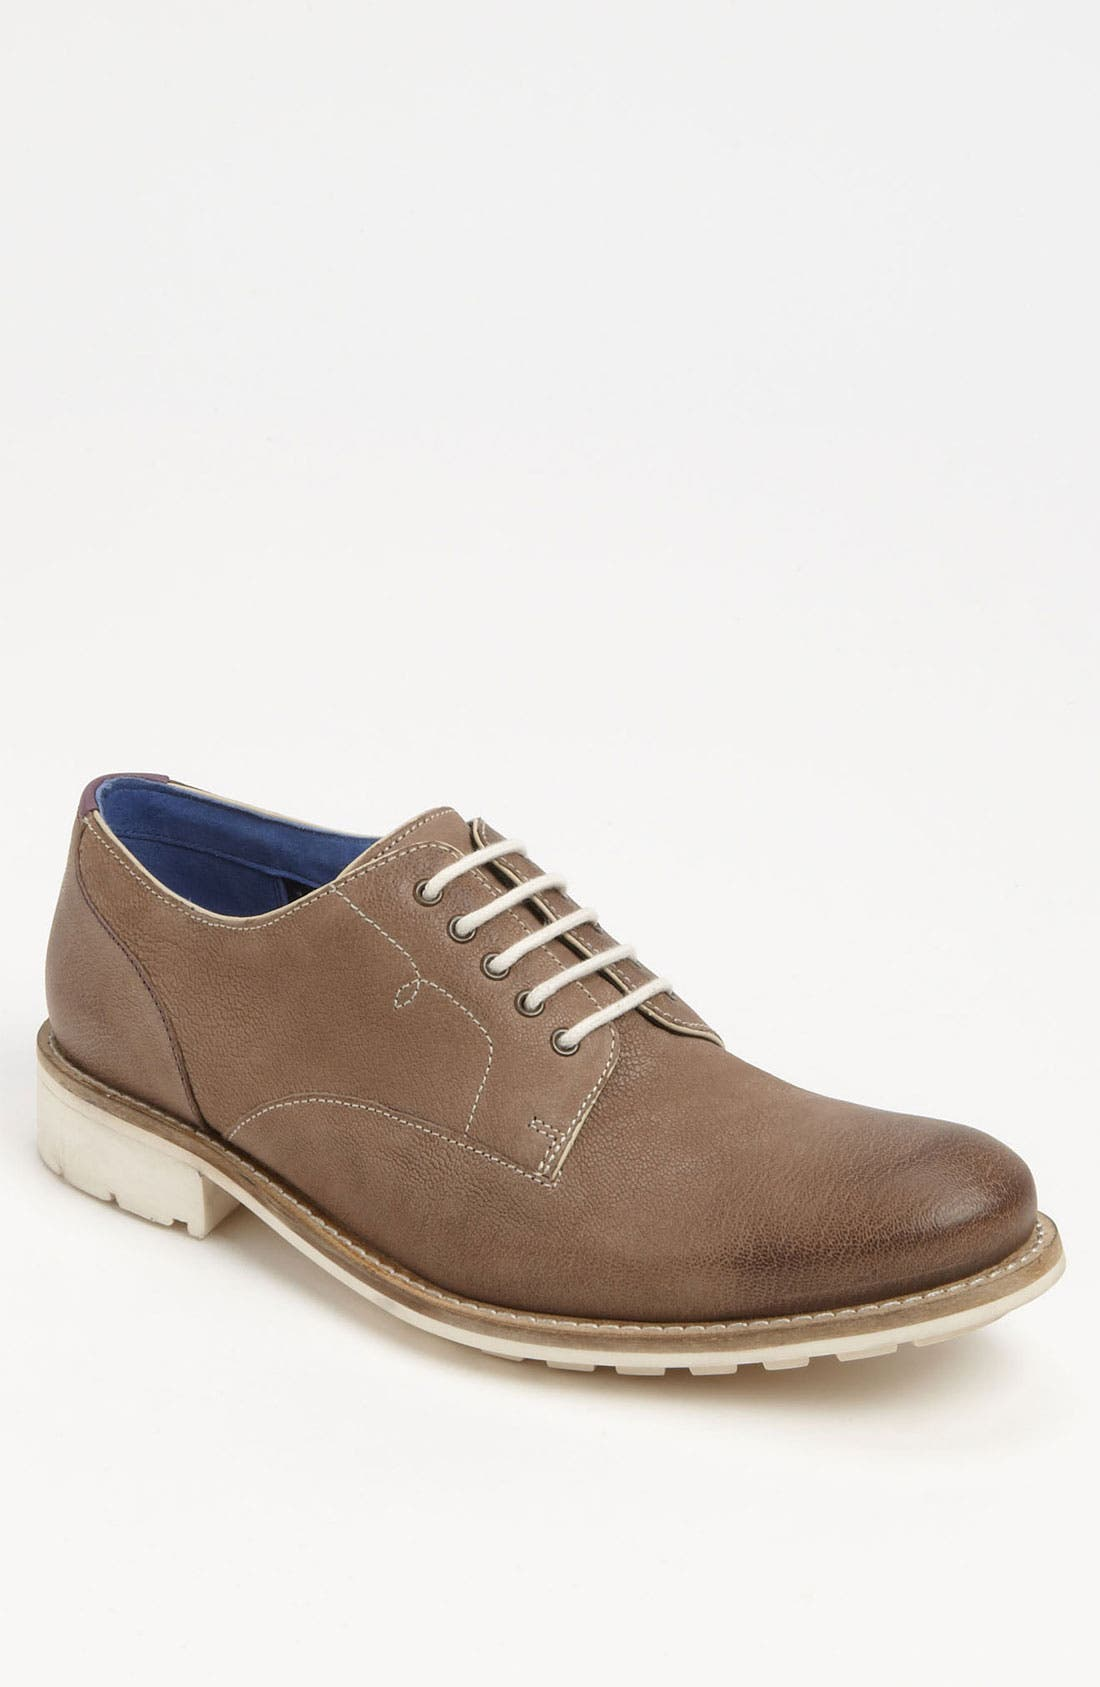 Alternate Image 1 Selected - Ted Baker London 'Tich' Buck Shoe